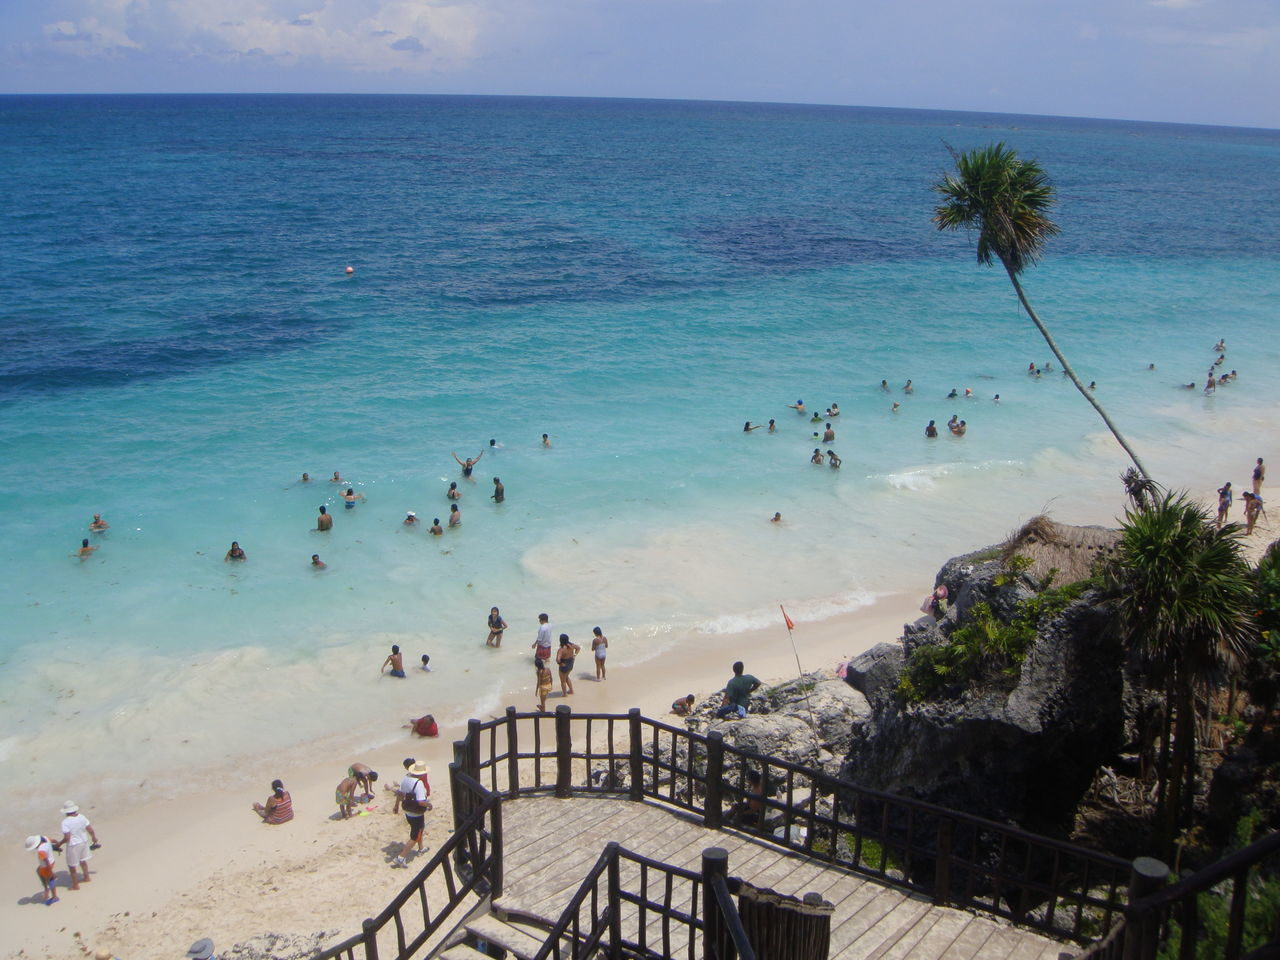 Sea Large Group Of People Beach Water Sky High Angle View Travel Destinations Outdoors Leisure Activity Horizon Over Water Vacations Sand People Tree Nature Adults Only Day Adult Mexico Tulum , Rivera Maya. Tulum Beach Tulum Ruins Tulum, Mexico